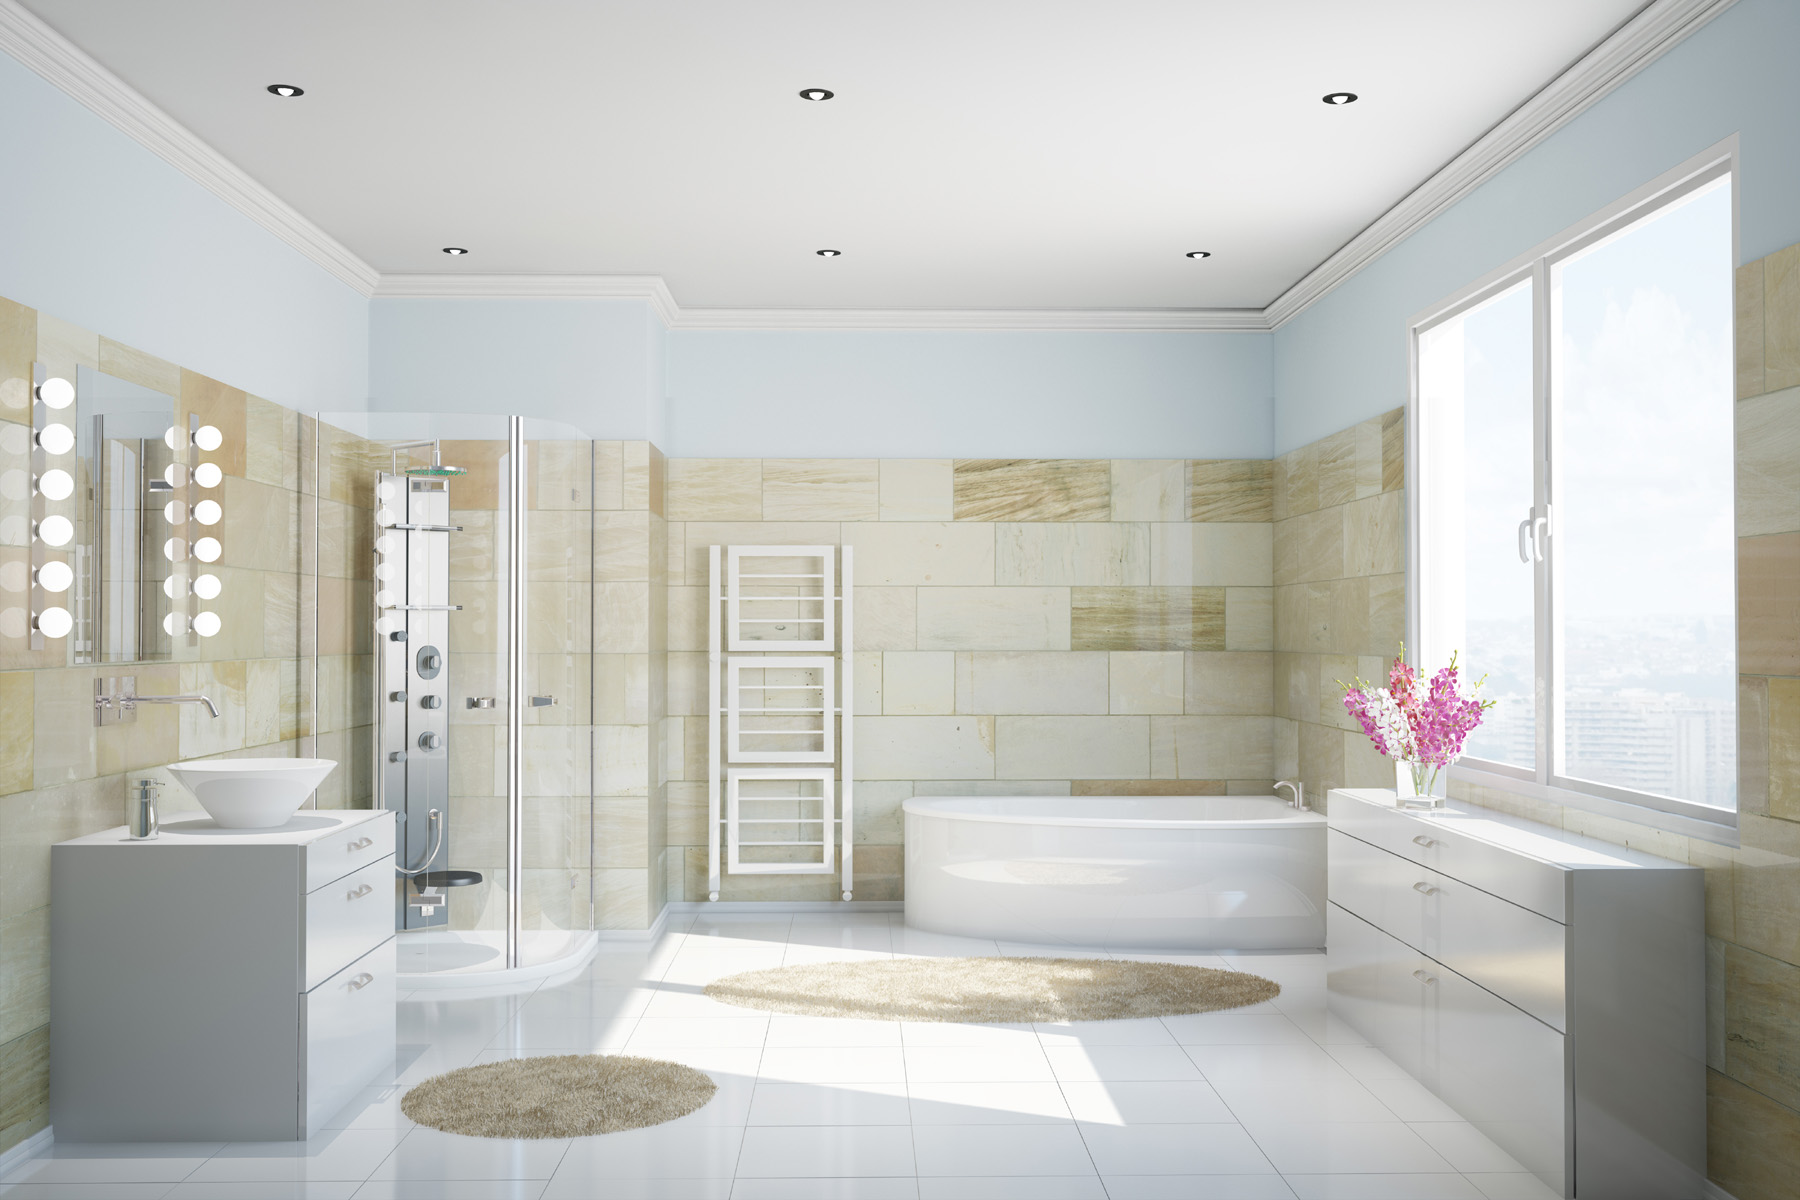 Spacious bathroom Interior 52466